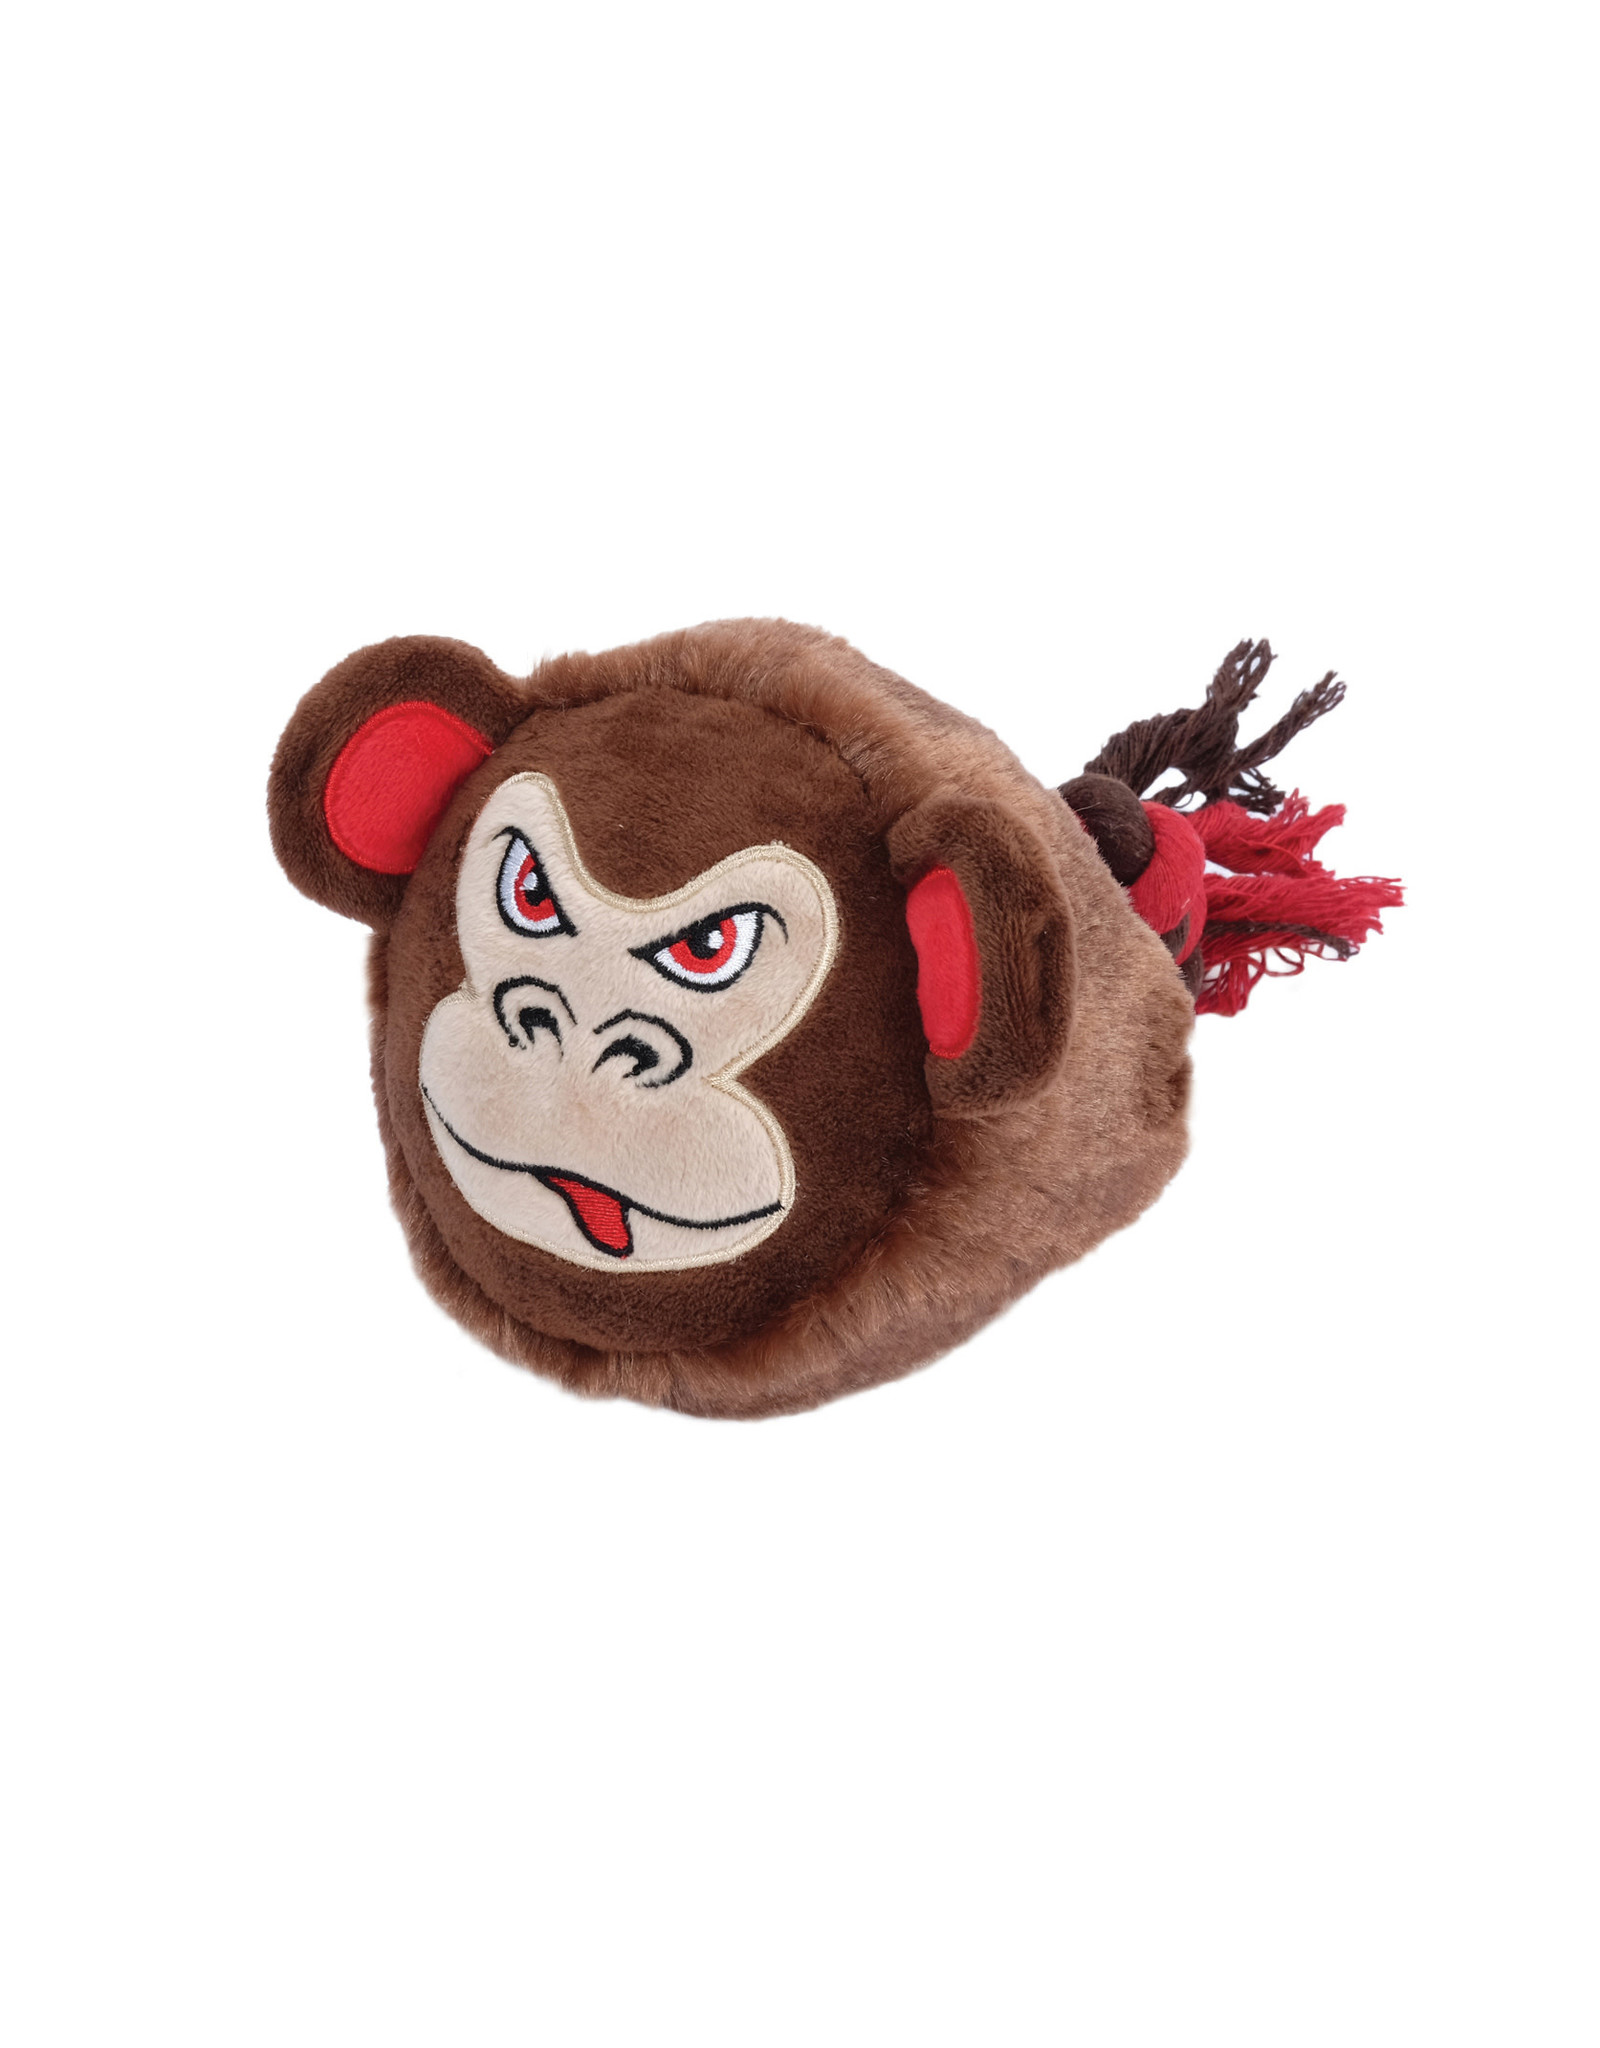 DogIt Dogit Stuffies – Big Head Friend - Monkey - 23 cm (9 in)